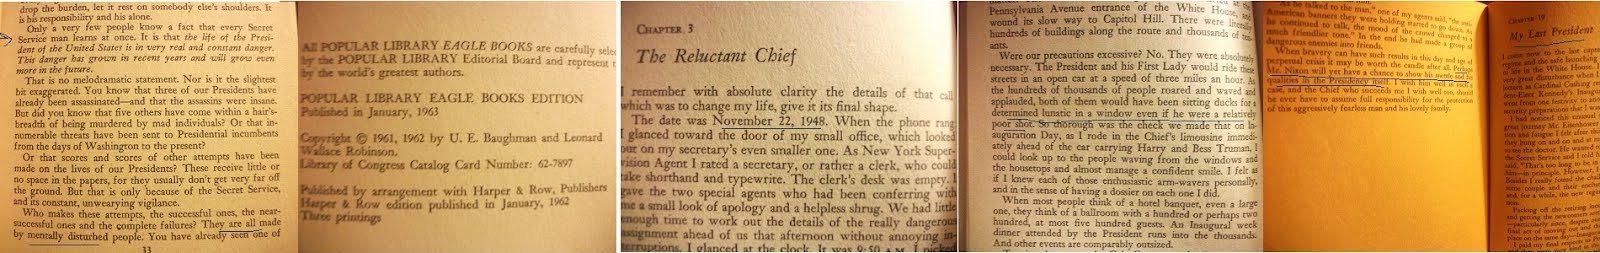 "From JFK Secret Service Chief U.E. Baughman's PRE-ASSASSINATION book ""Secret Service Chief"":"